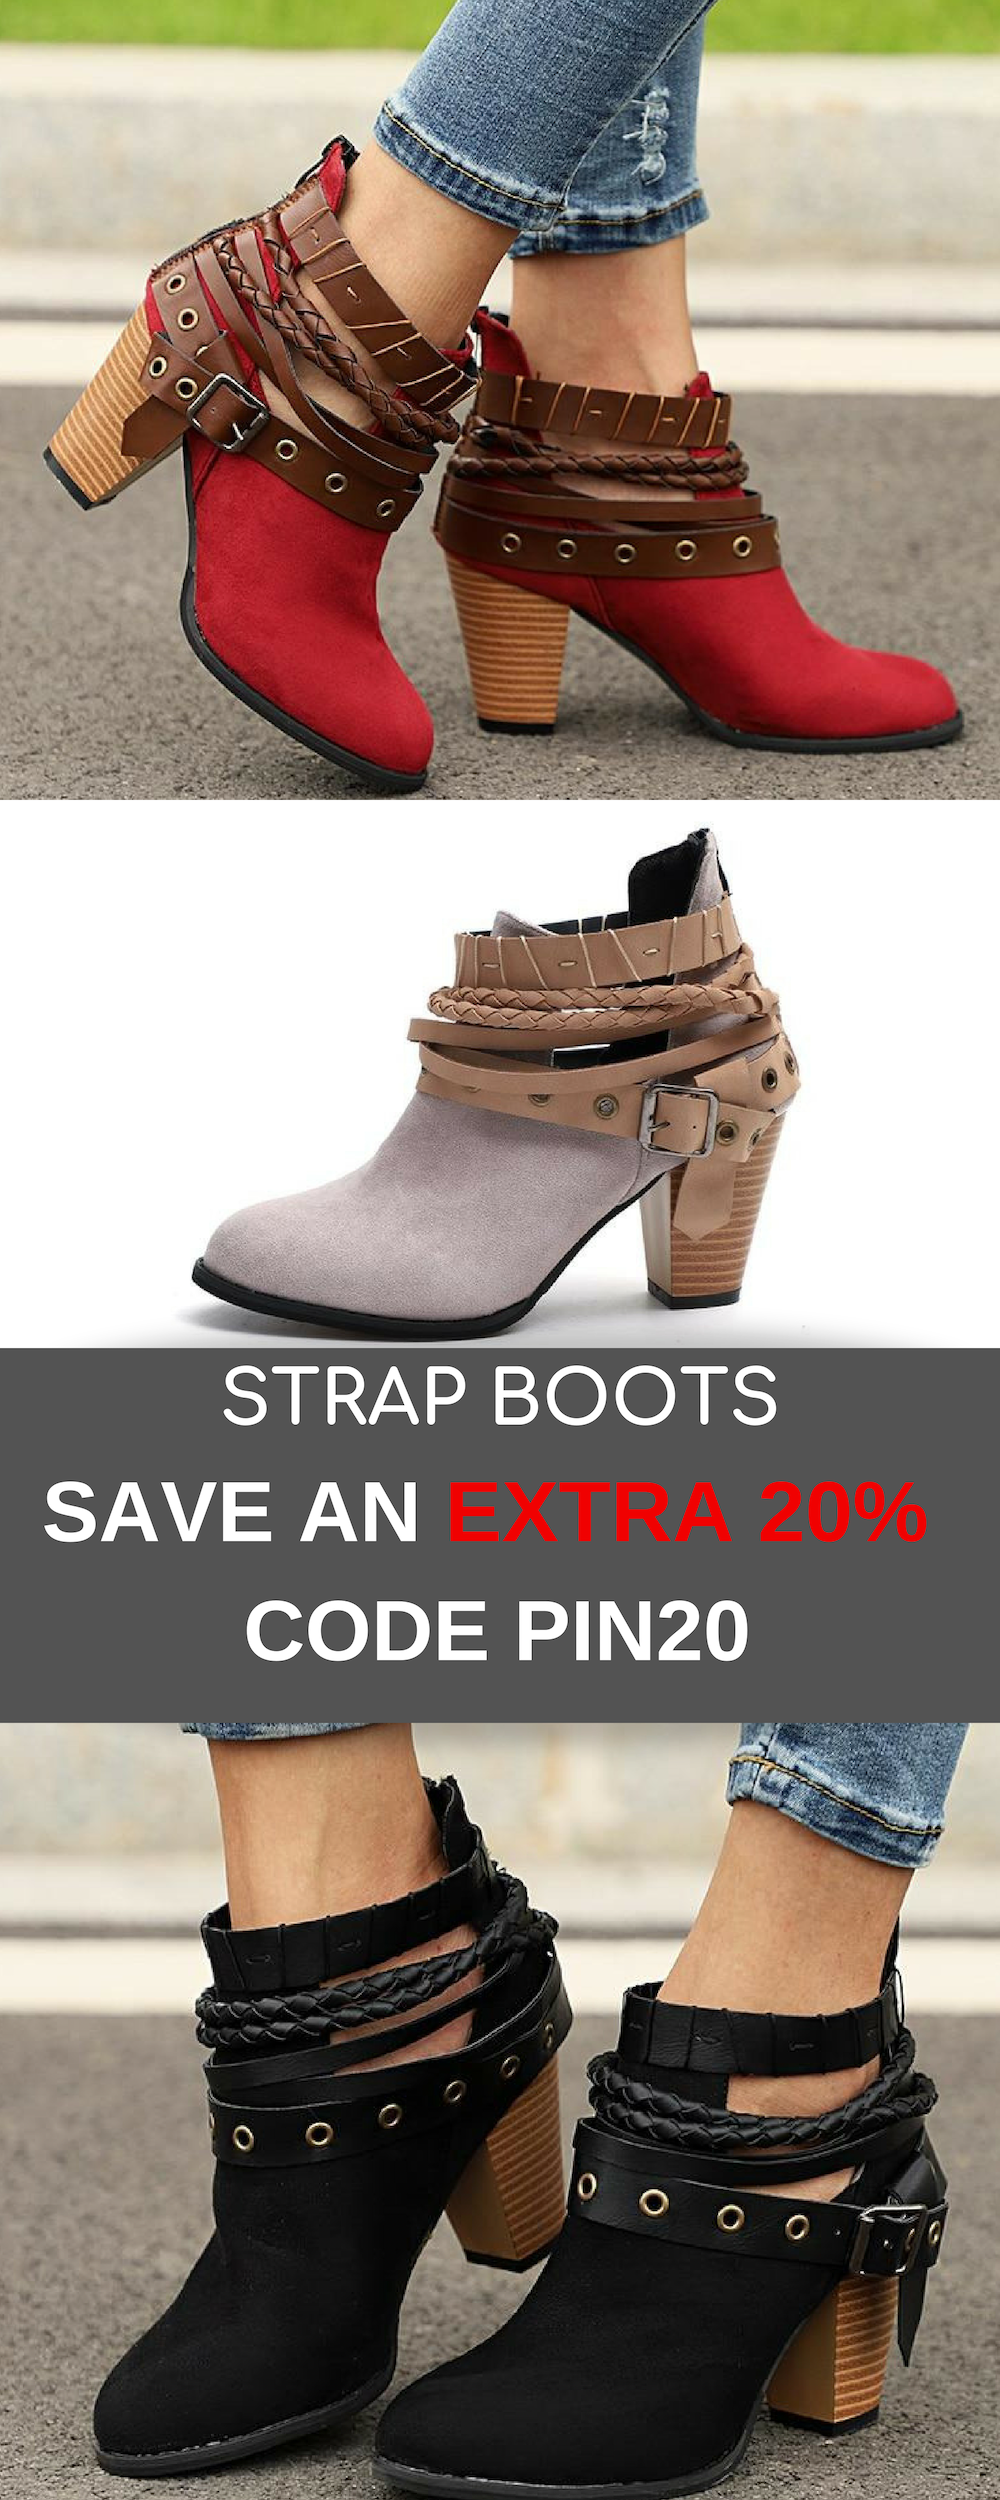 99e807a8b Beautiful versatile women s strap boots with buckle. Now save an extra 20%  off on